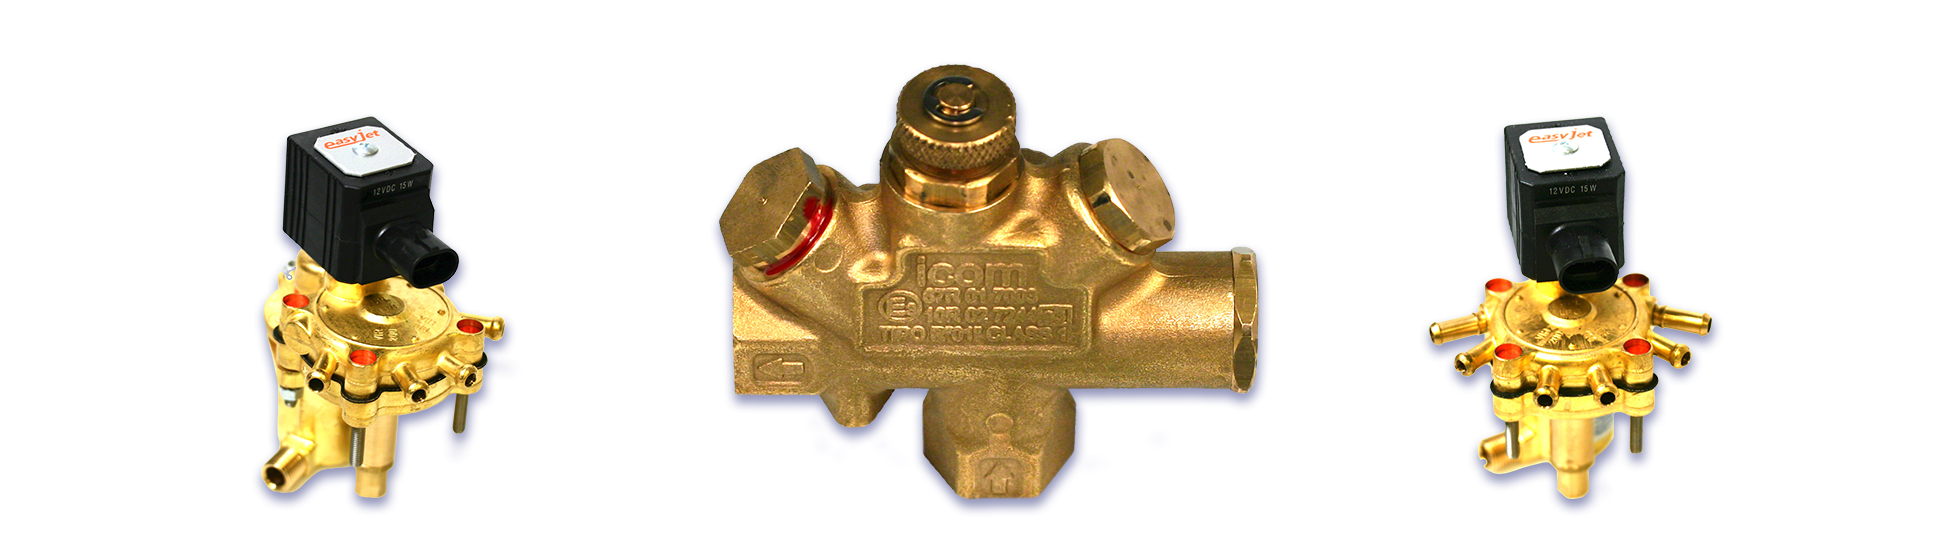 Pressure regulators LPG